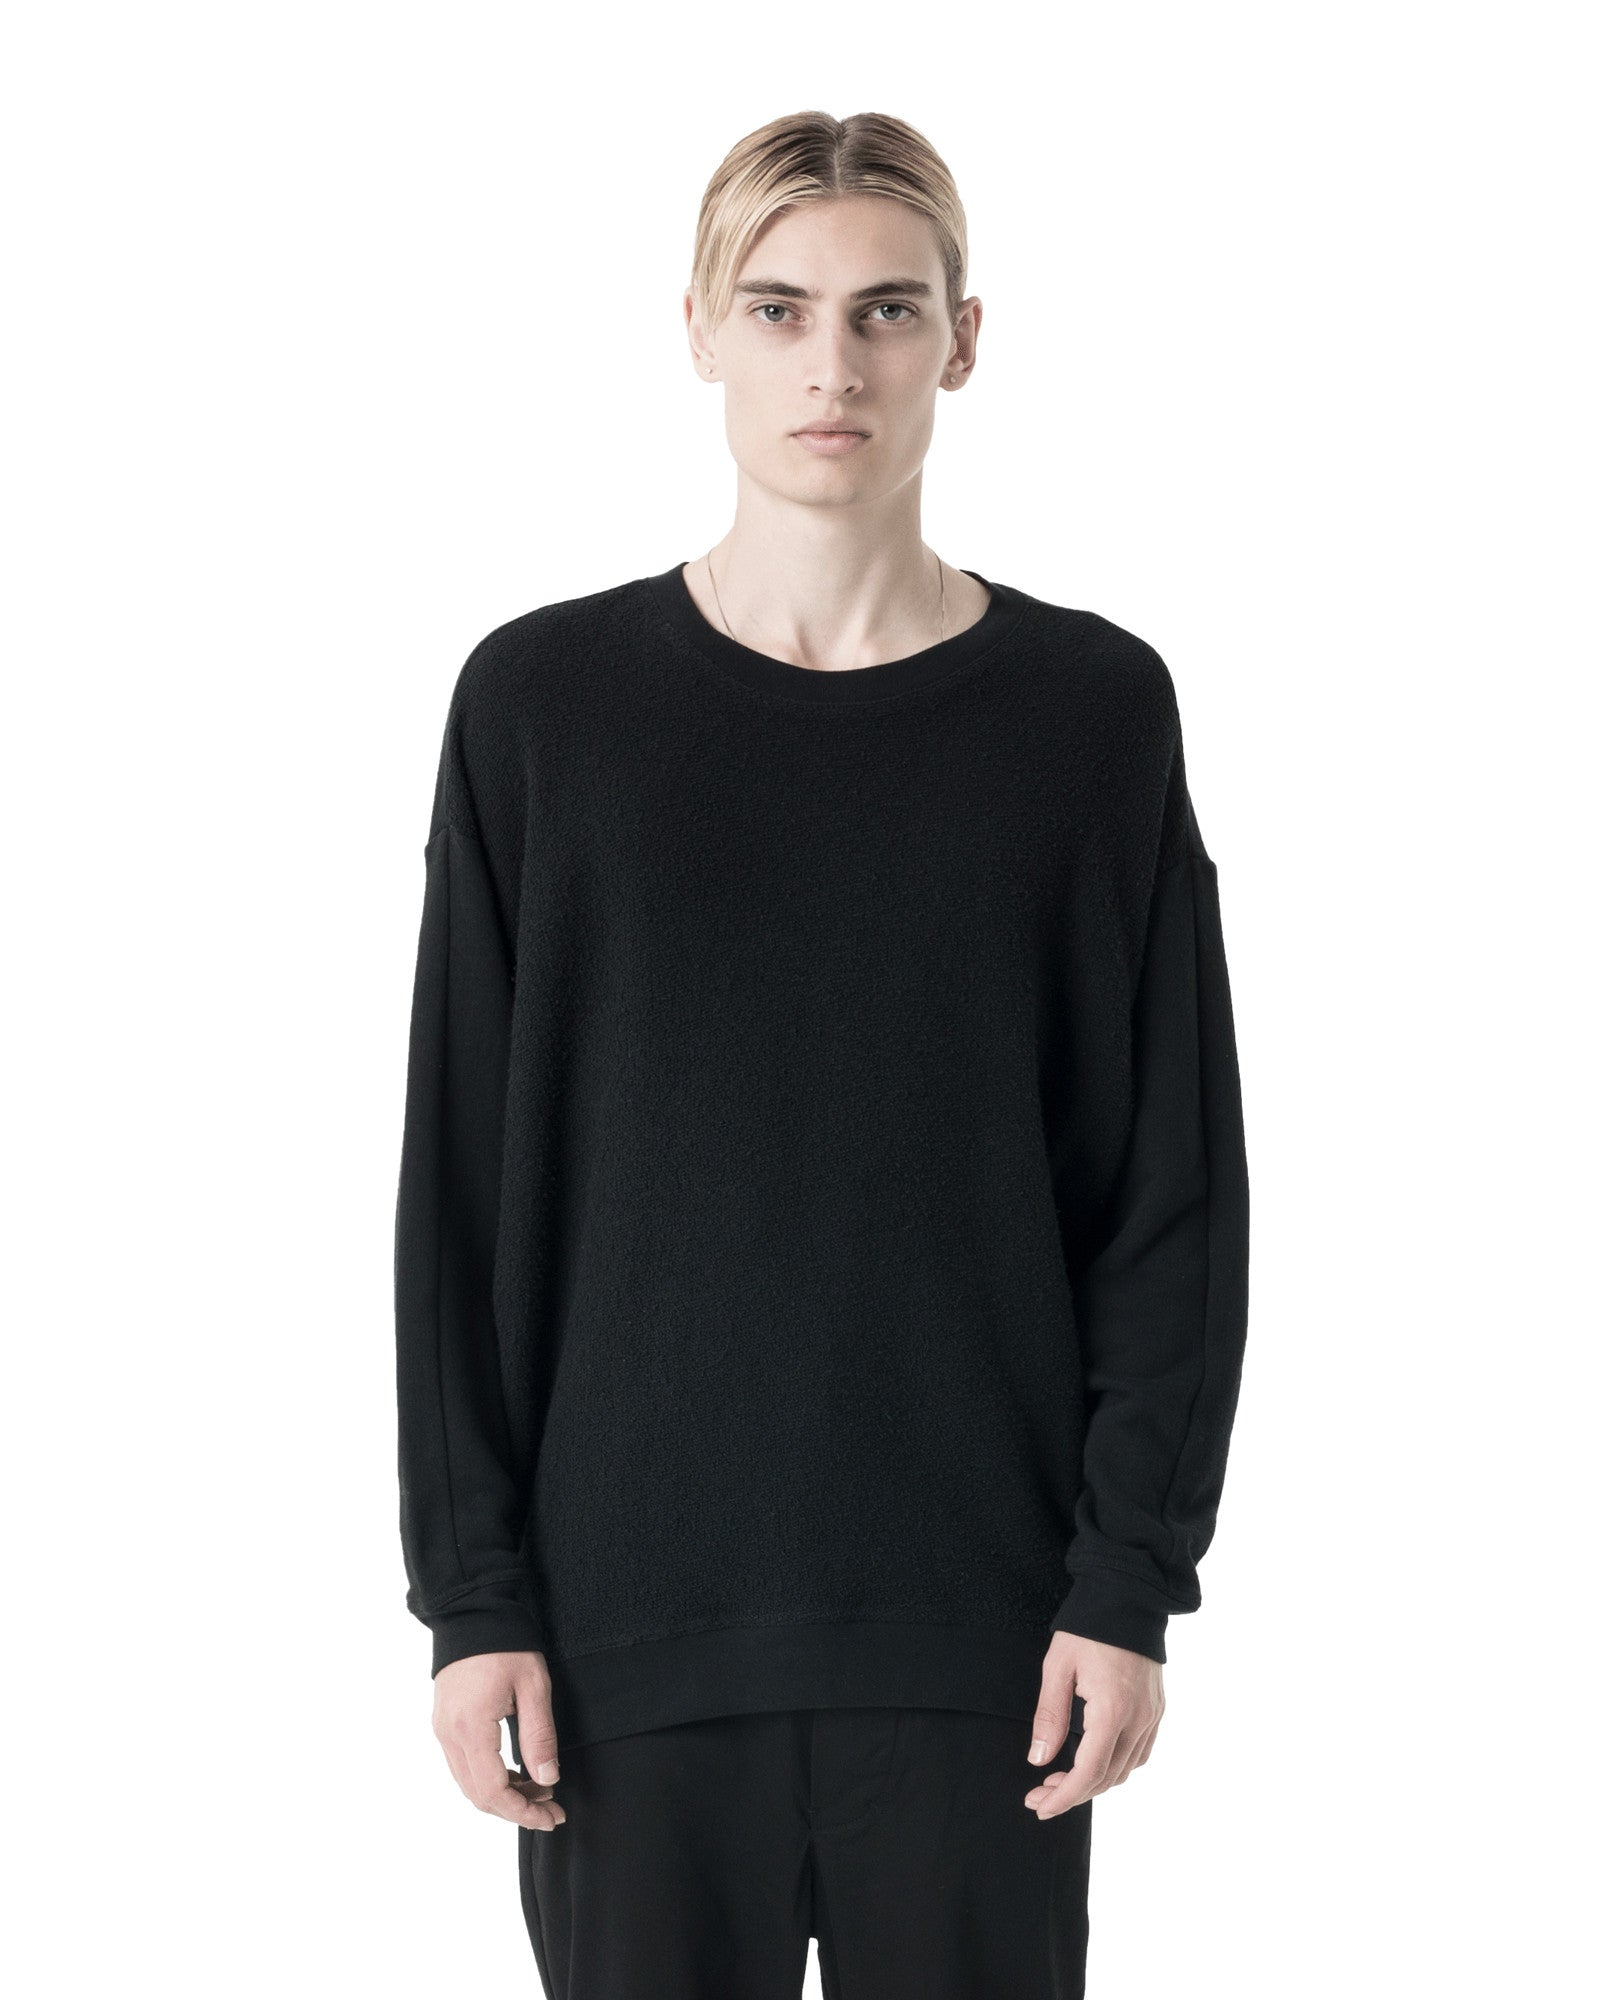 Rist Sweatshirt - Black